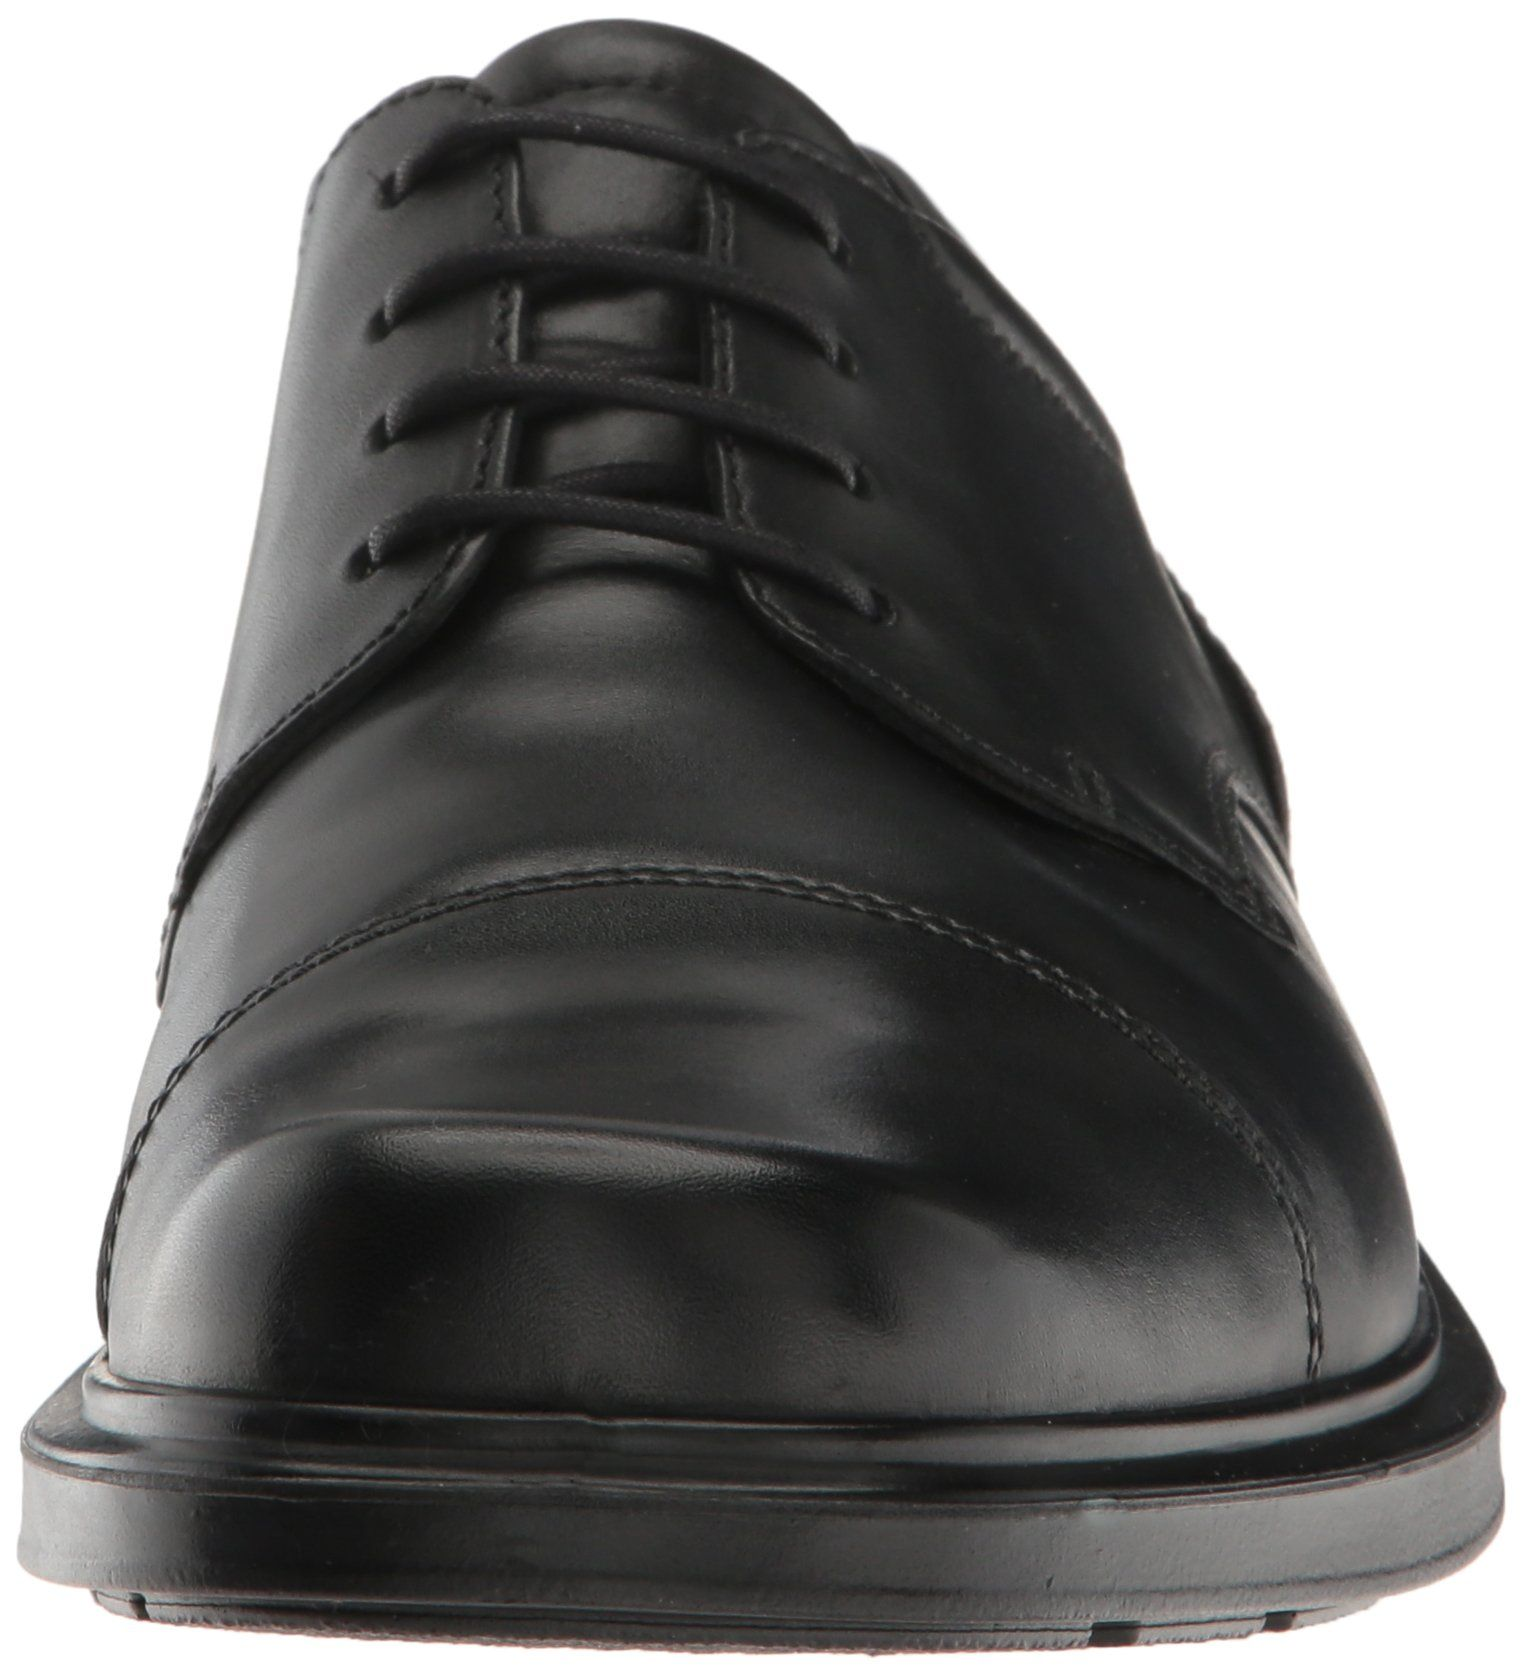 1032412210b6 ECCO Mens Helsinki Cap Toe Oxford Black 45 EU 1111.5 M US     Learn ...